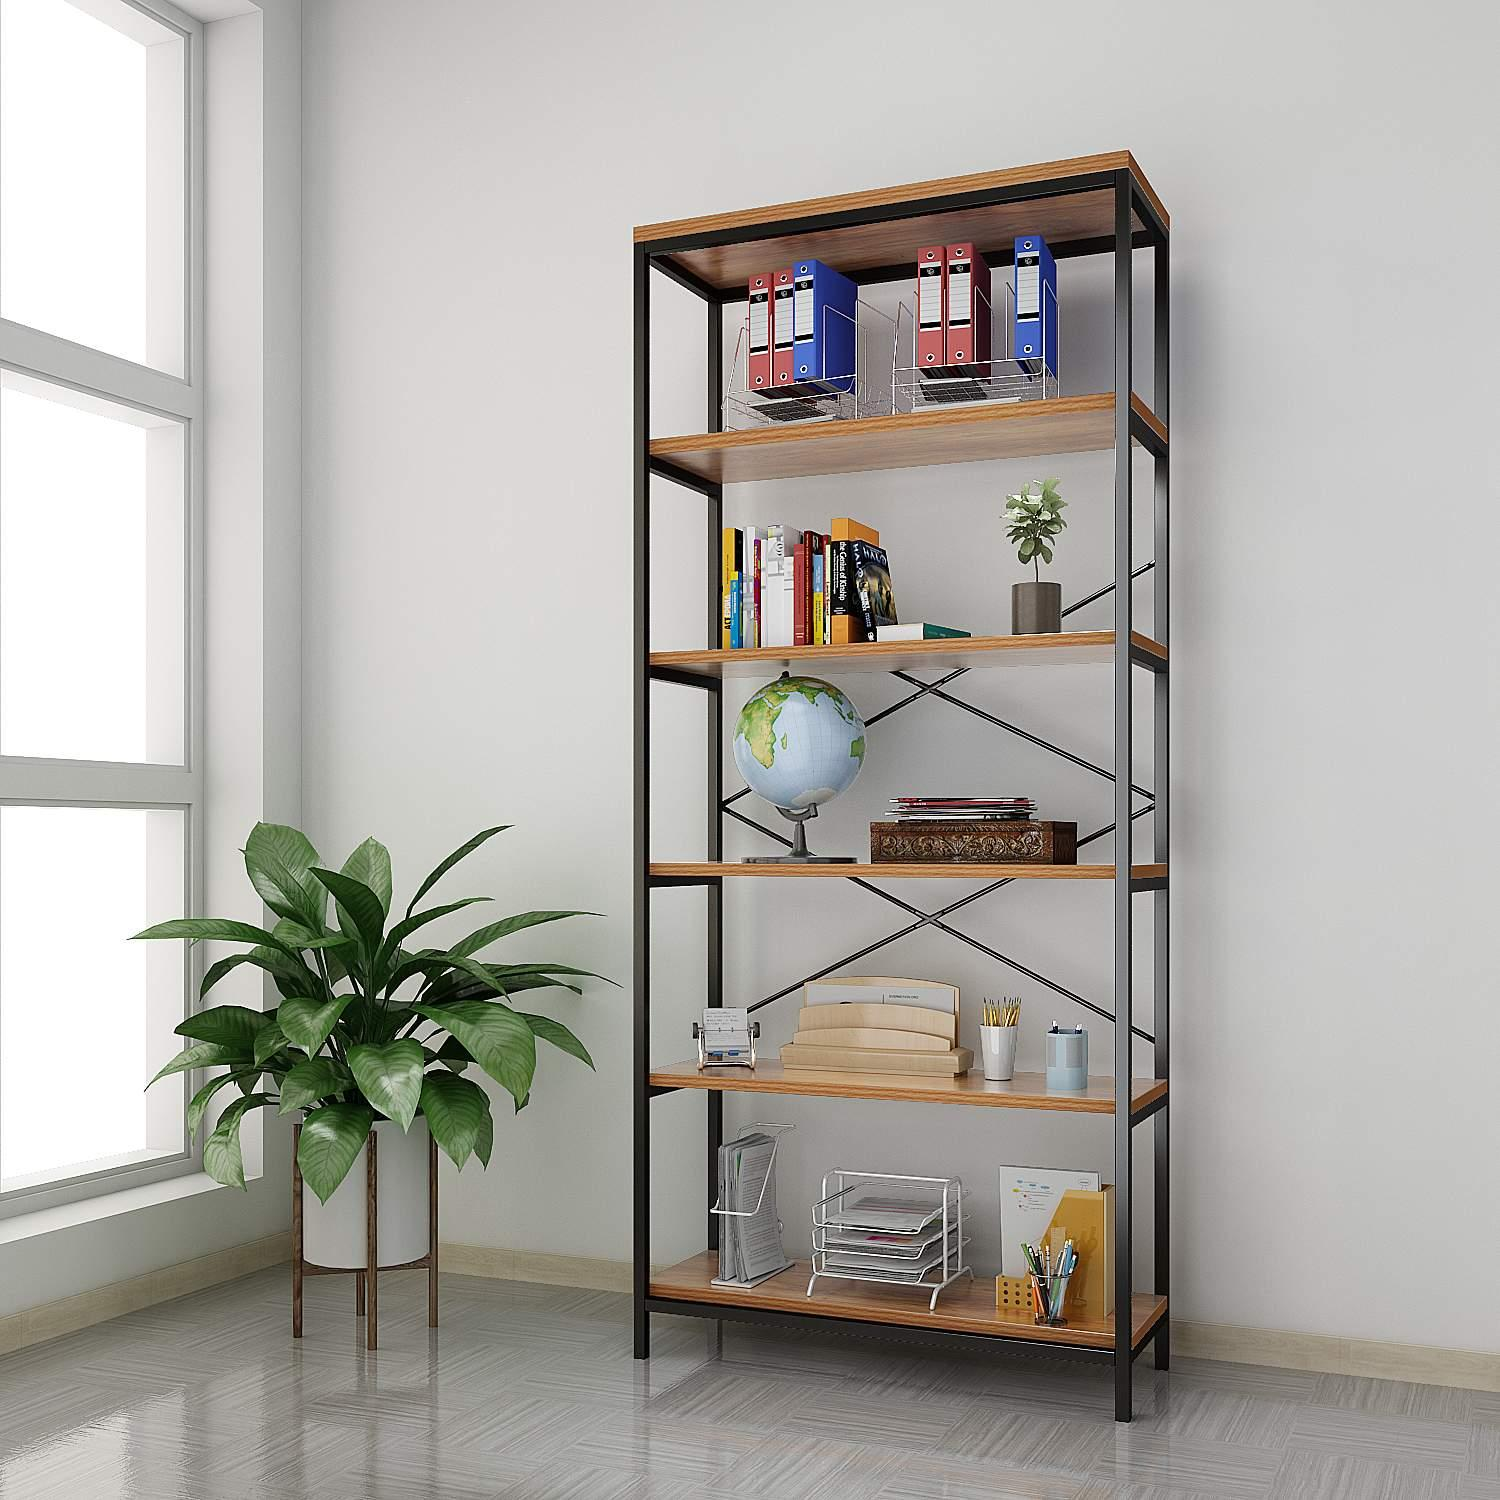 Durable 5-Shelf Vintage Industrial Bookcase, Wood and Metal Rustic Open Bookshelf, 32 '' x 12'' x 71''ECLNK